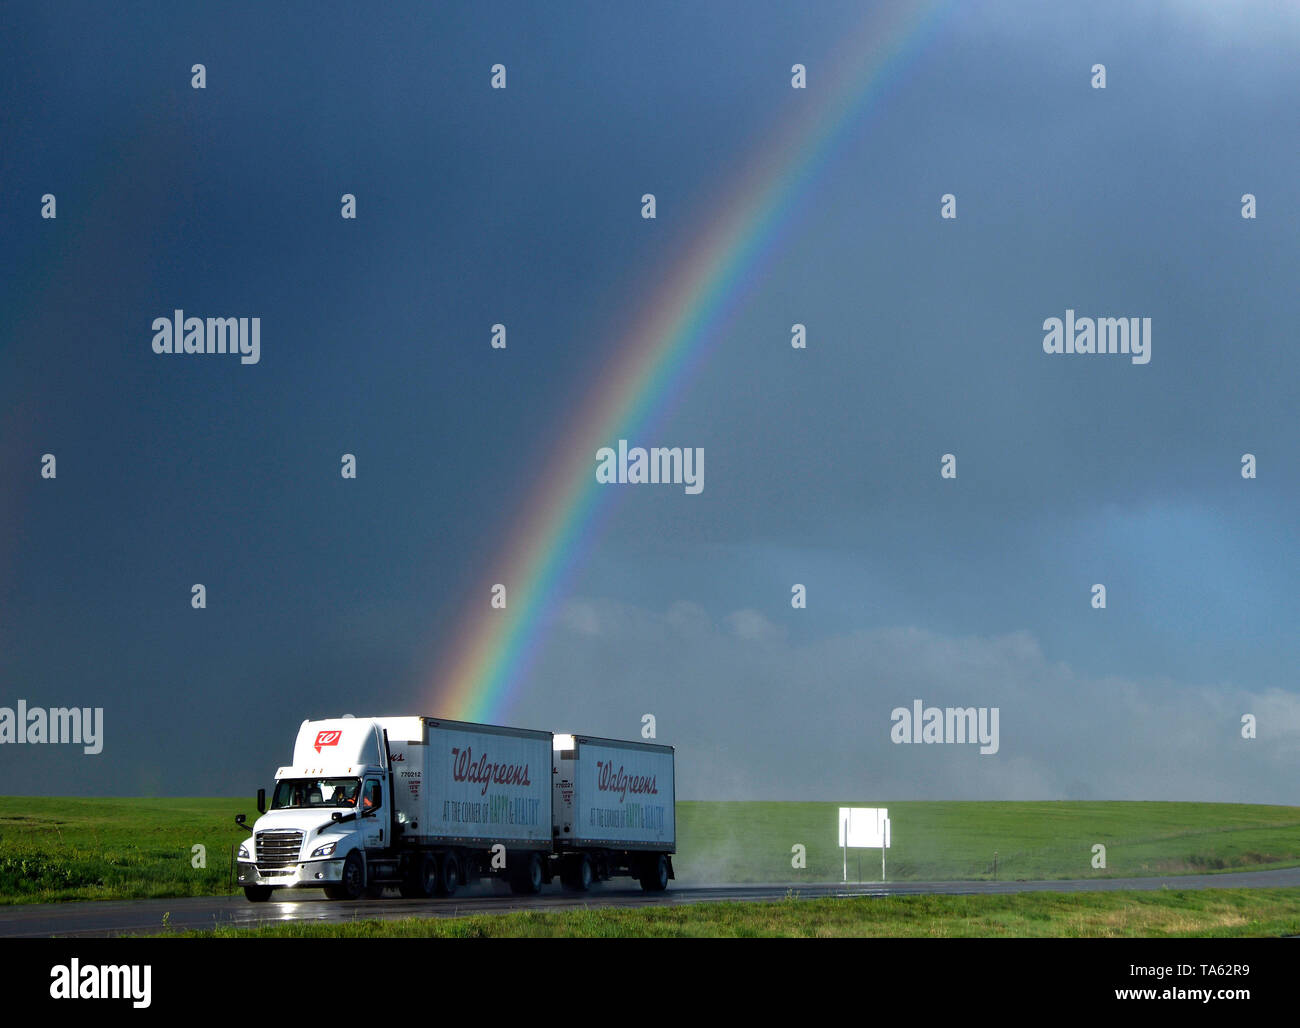 May 21, 2019, Topeka, Kansas, U.S.: A rainbow forms from thunderstorms cells east of Topeka, KS. The thunderstorms were moving up to 50 mph dumping more rain and strong winds with a few that went tornado warning. Severe continues to hit the midwest states this week. Credit: Gene Blevins/ZUMA Wire/Alamy Live News - Stock Image